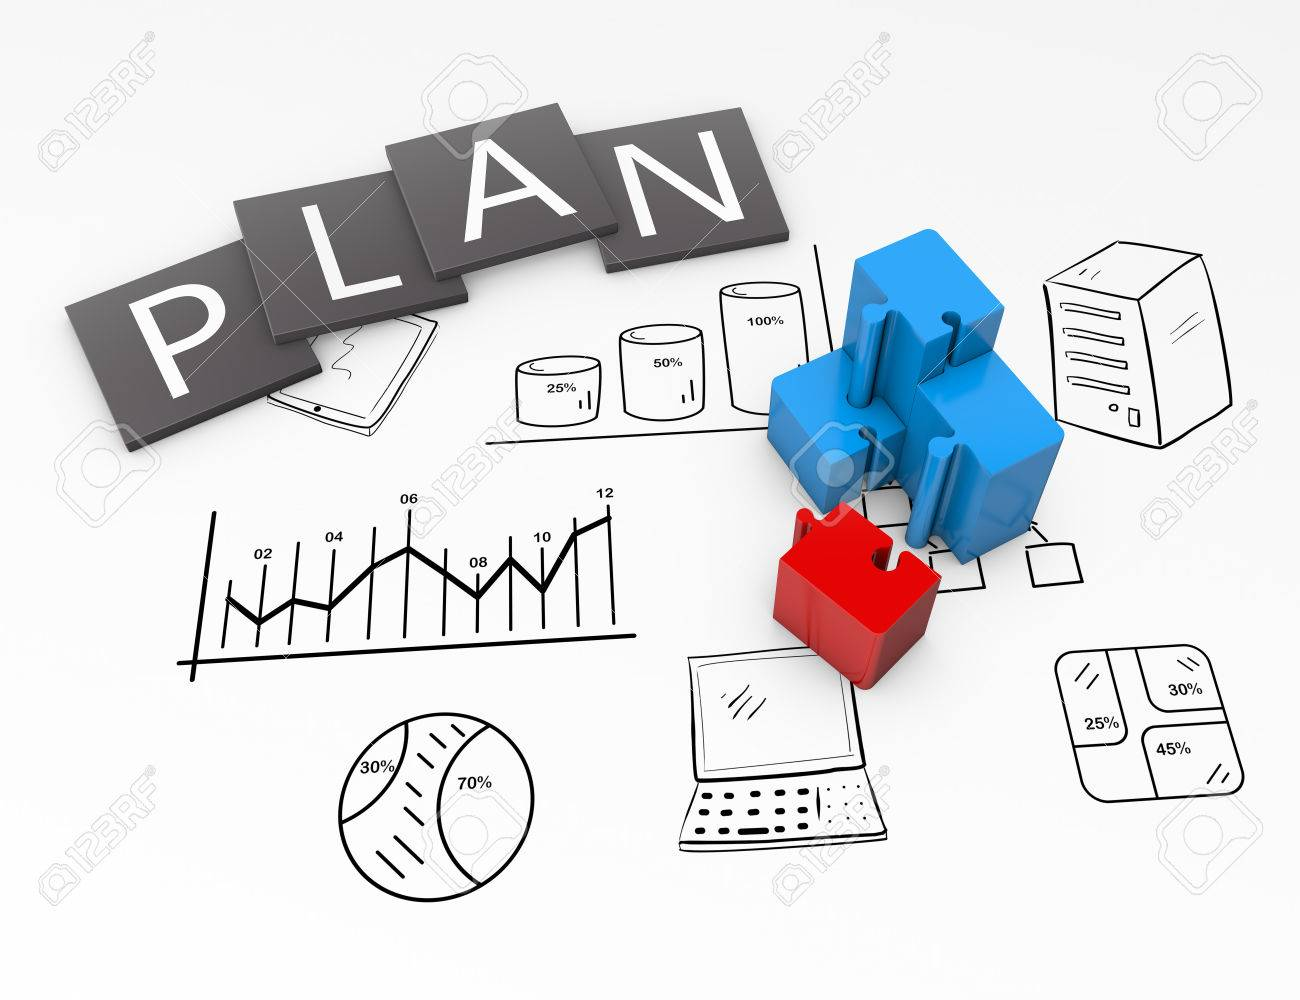 Business plan flow chart on the drawing - 23387962